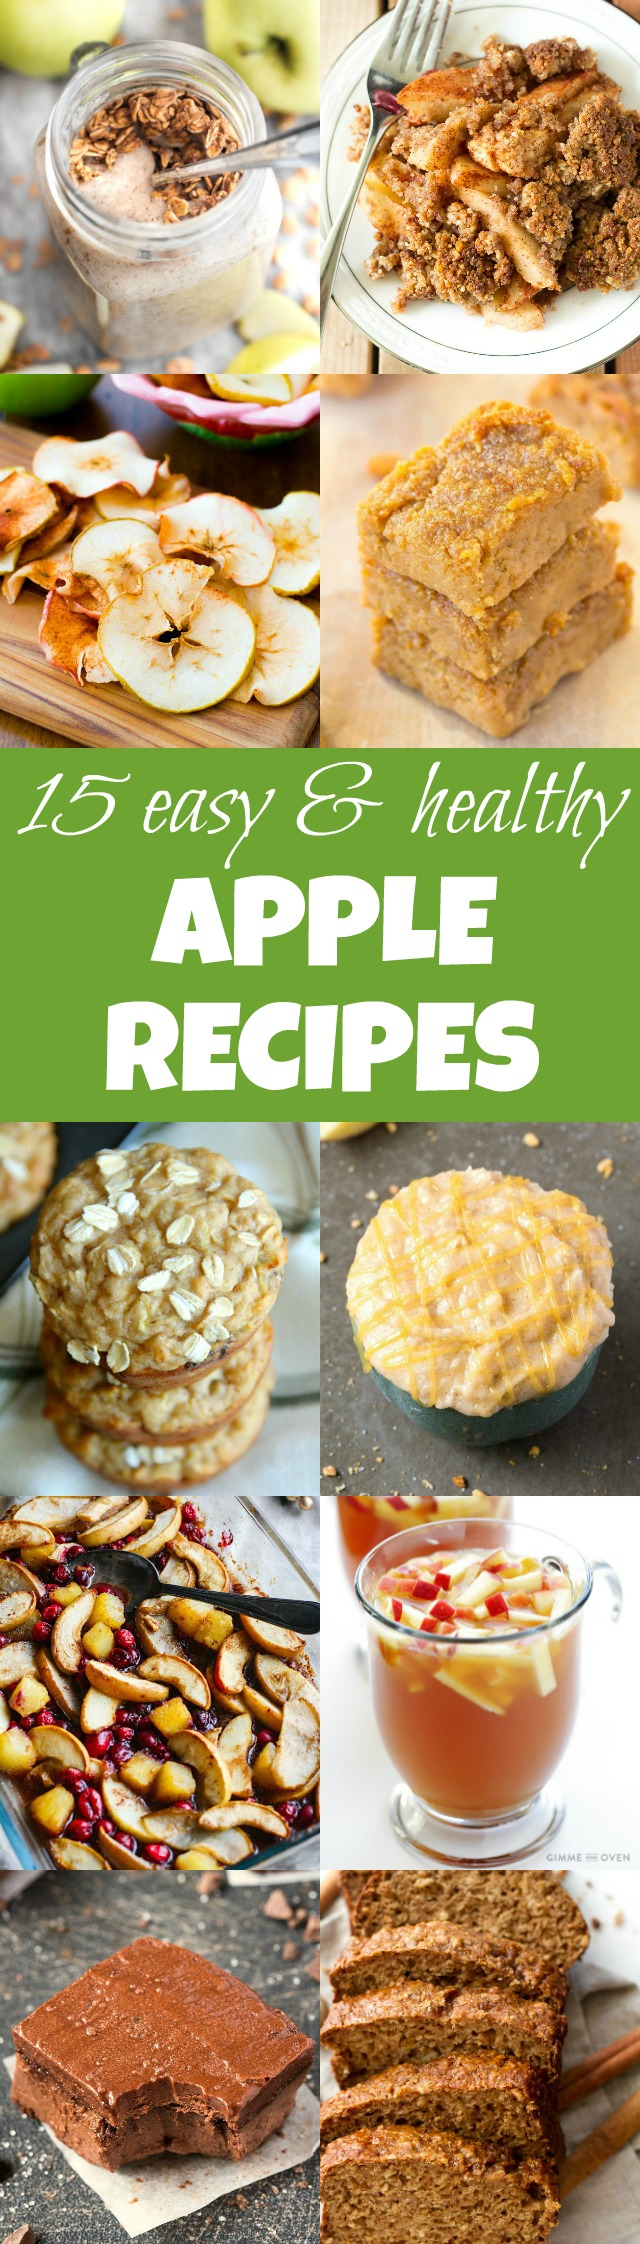 15 Easy & Healthy Apple Recipes! With something for everyone, whether you're looking for something gluten-free, vegan, paleo, or refined sugar free | runningwithspoons.com